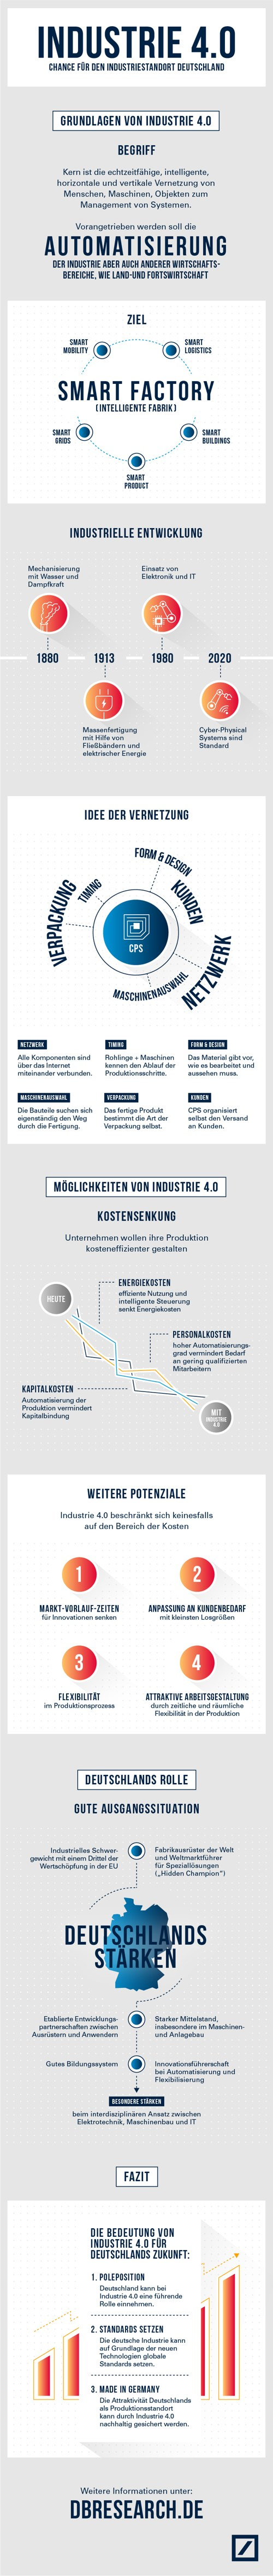 infografik db research industrie 40